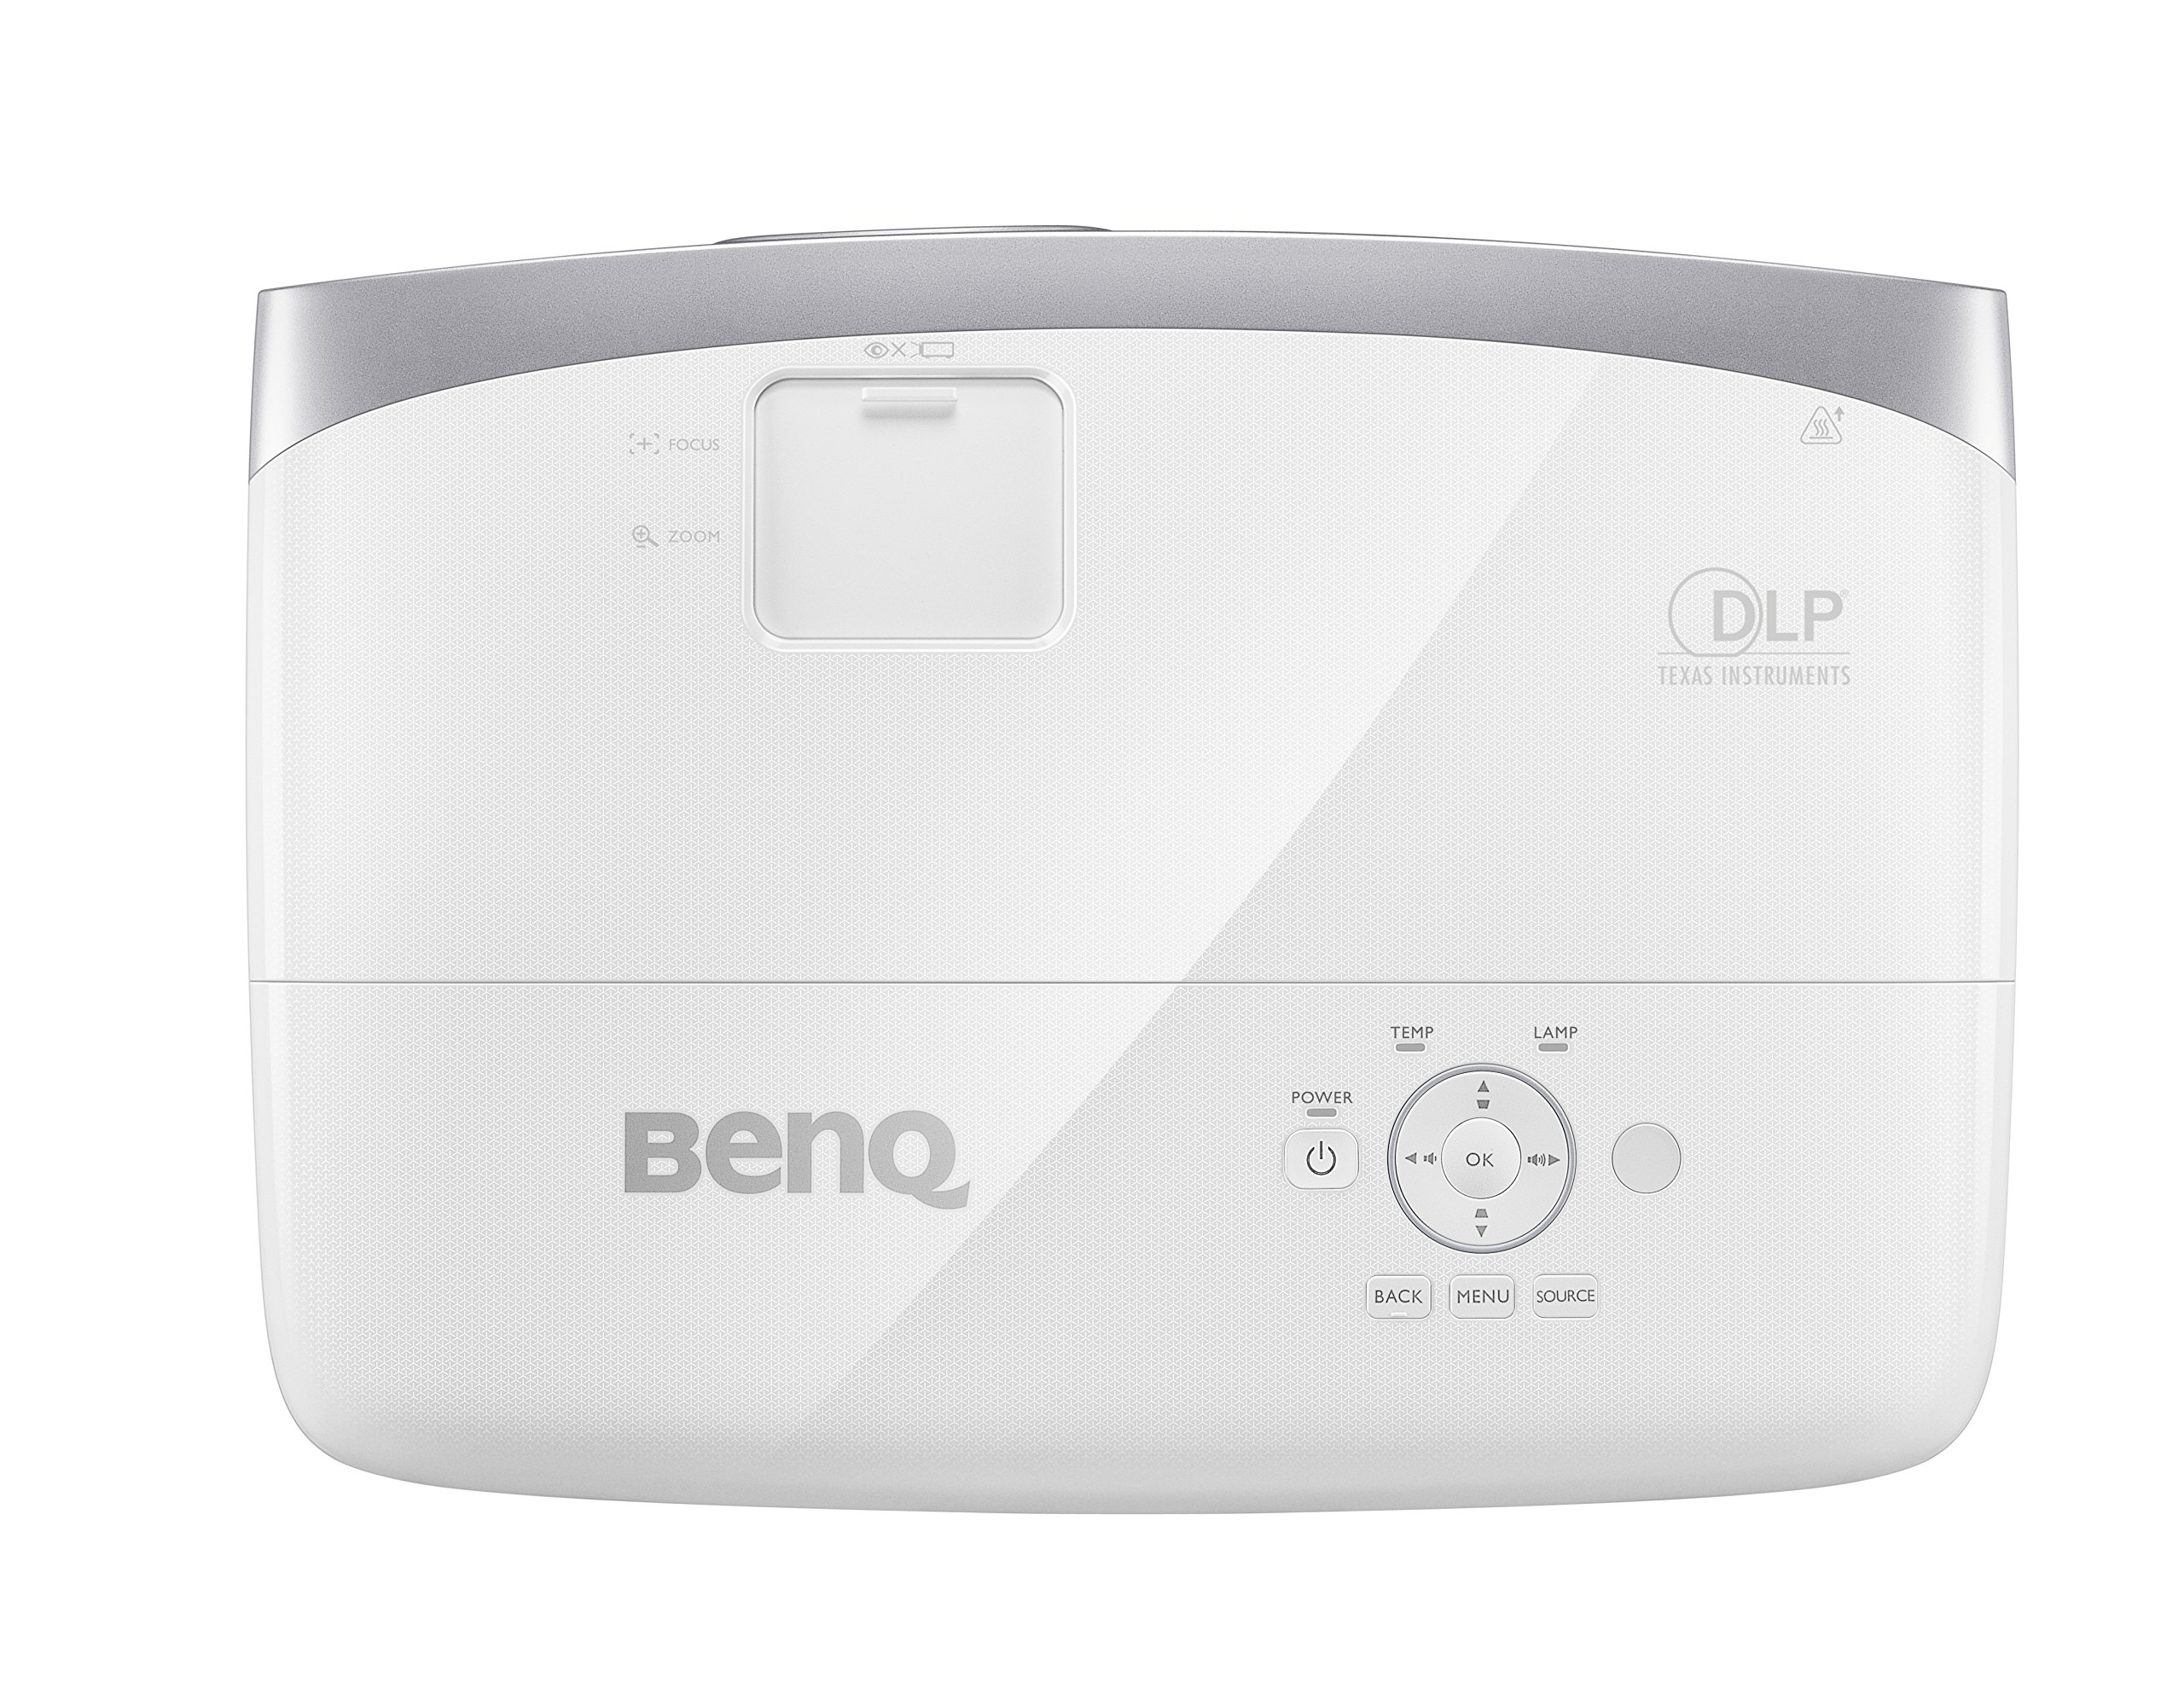 BenQ DLP HD 1080p Projector (HT2050) - 3D Home Theater Projector with All-Glass Cinema Grade Lens and RGBRGB Color Wheel by BenQ (Image #10)